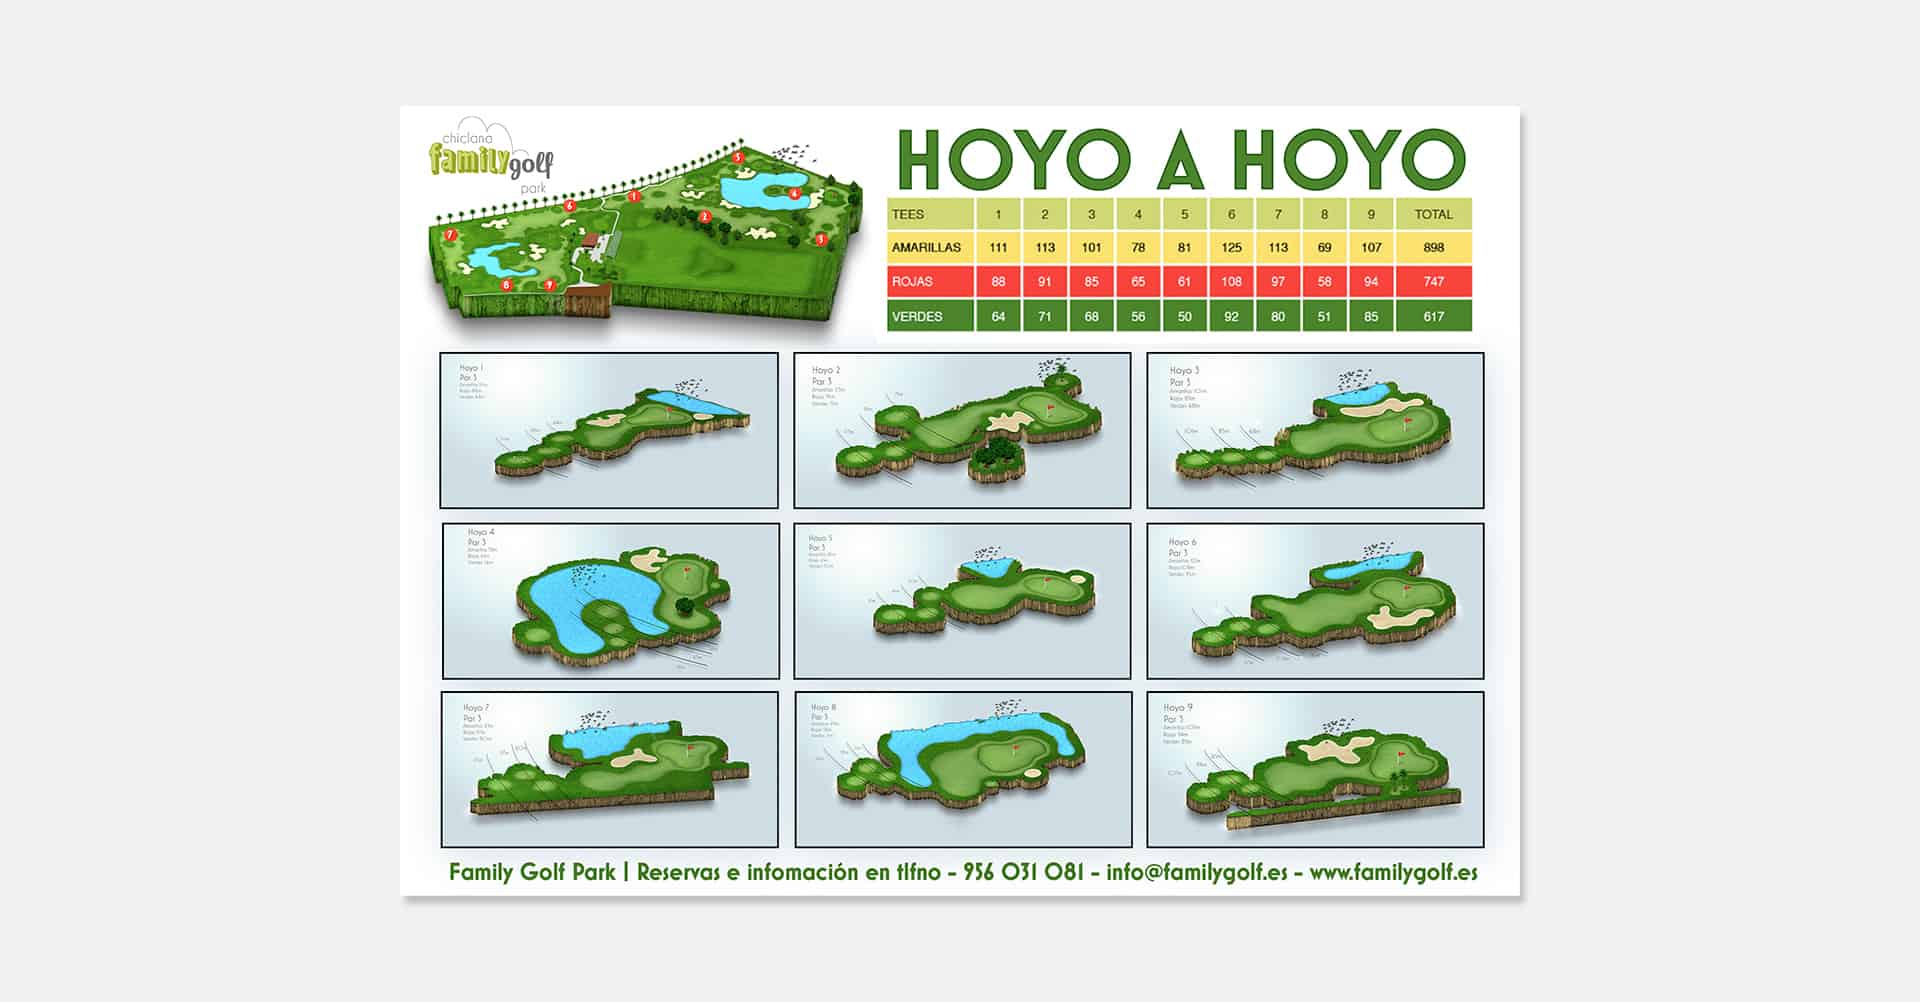 Family Golf - Hoyo a hoyo